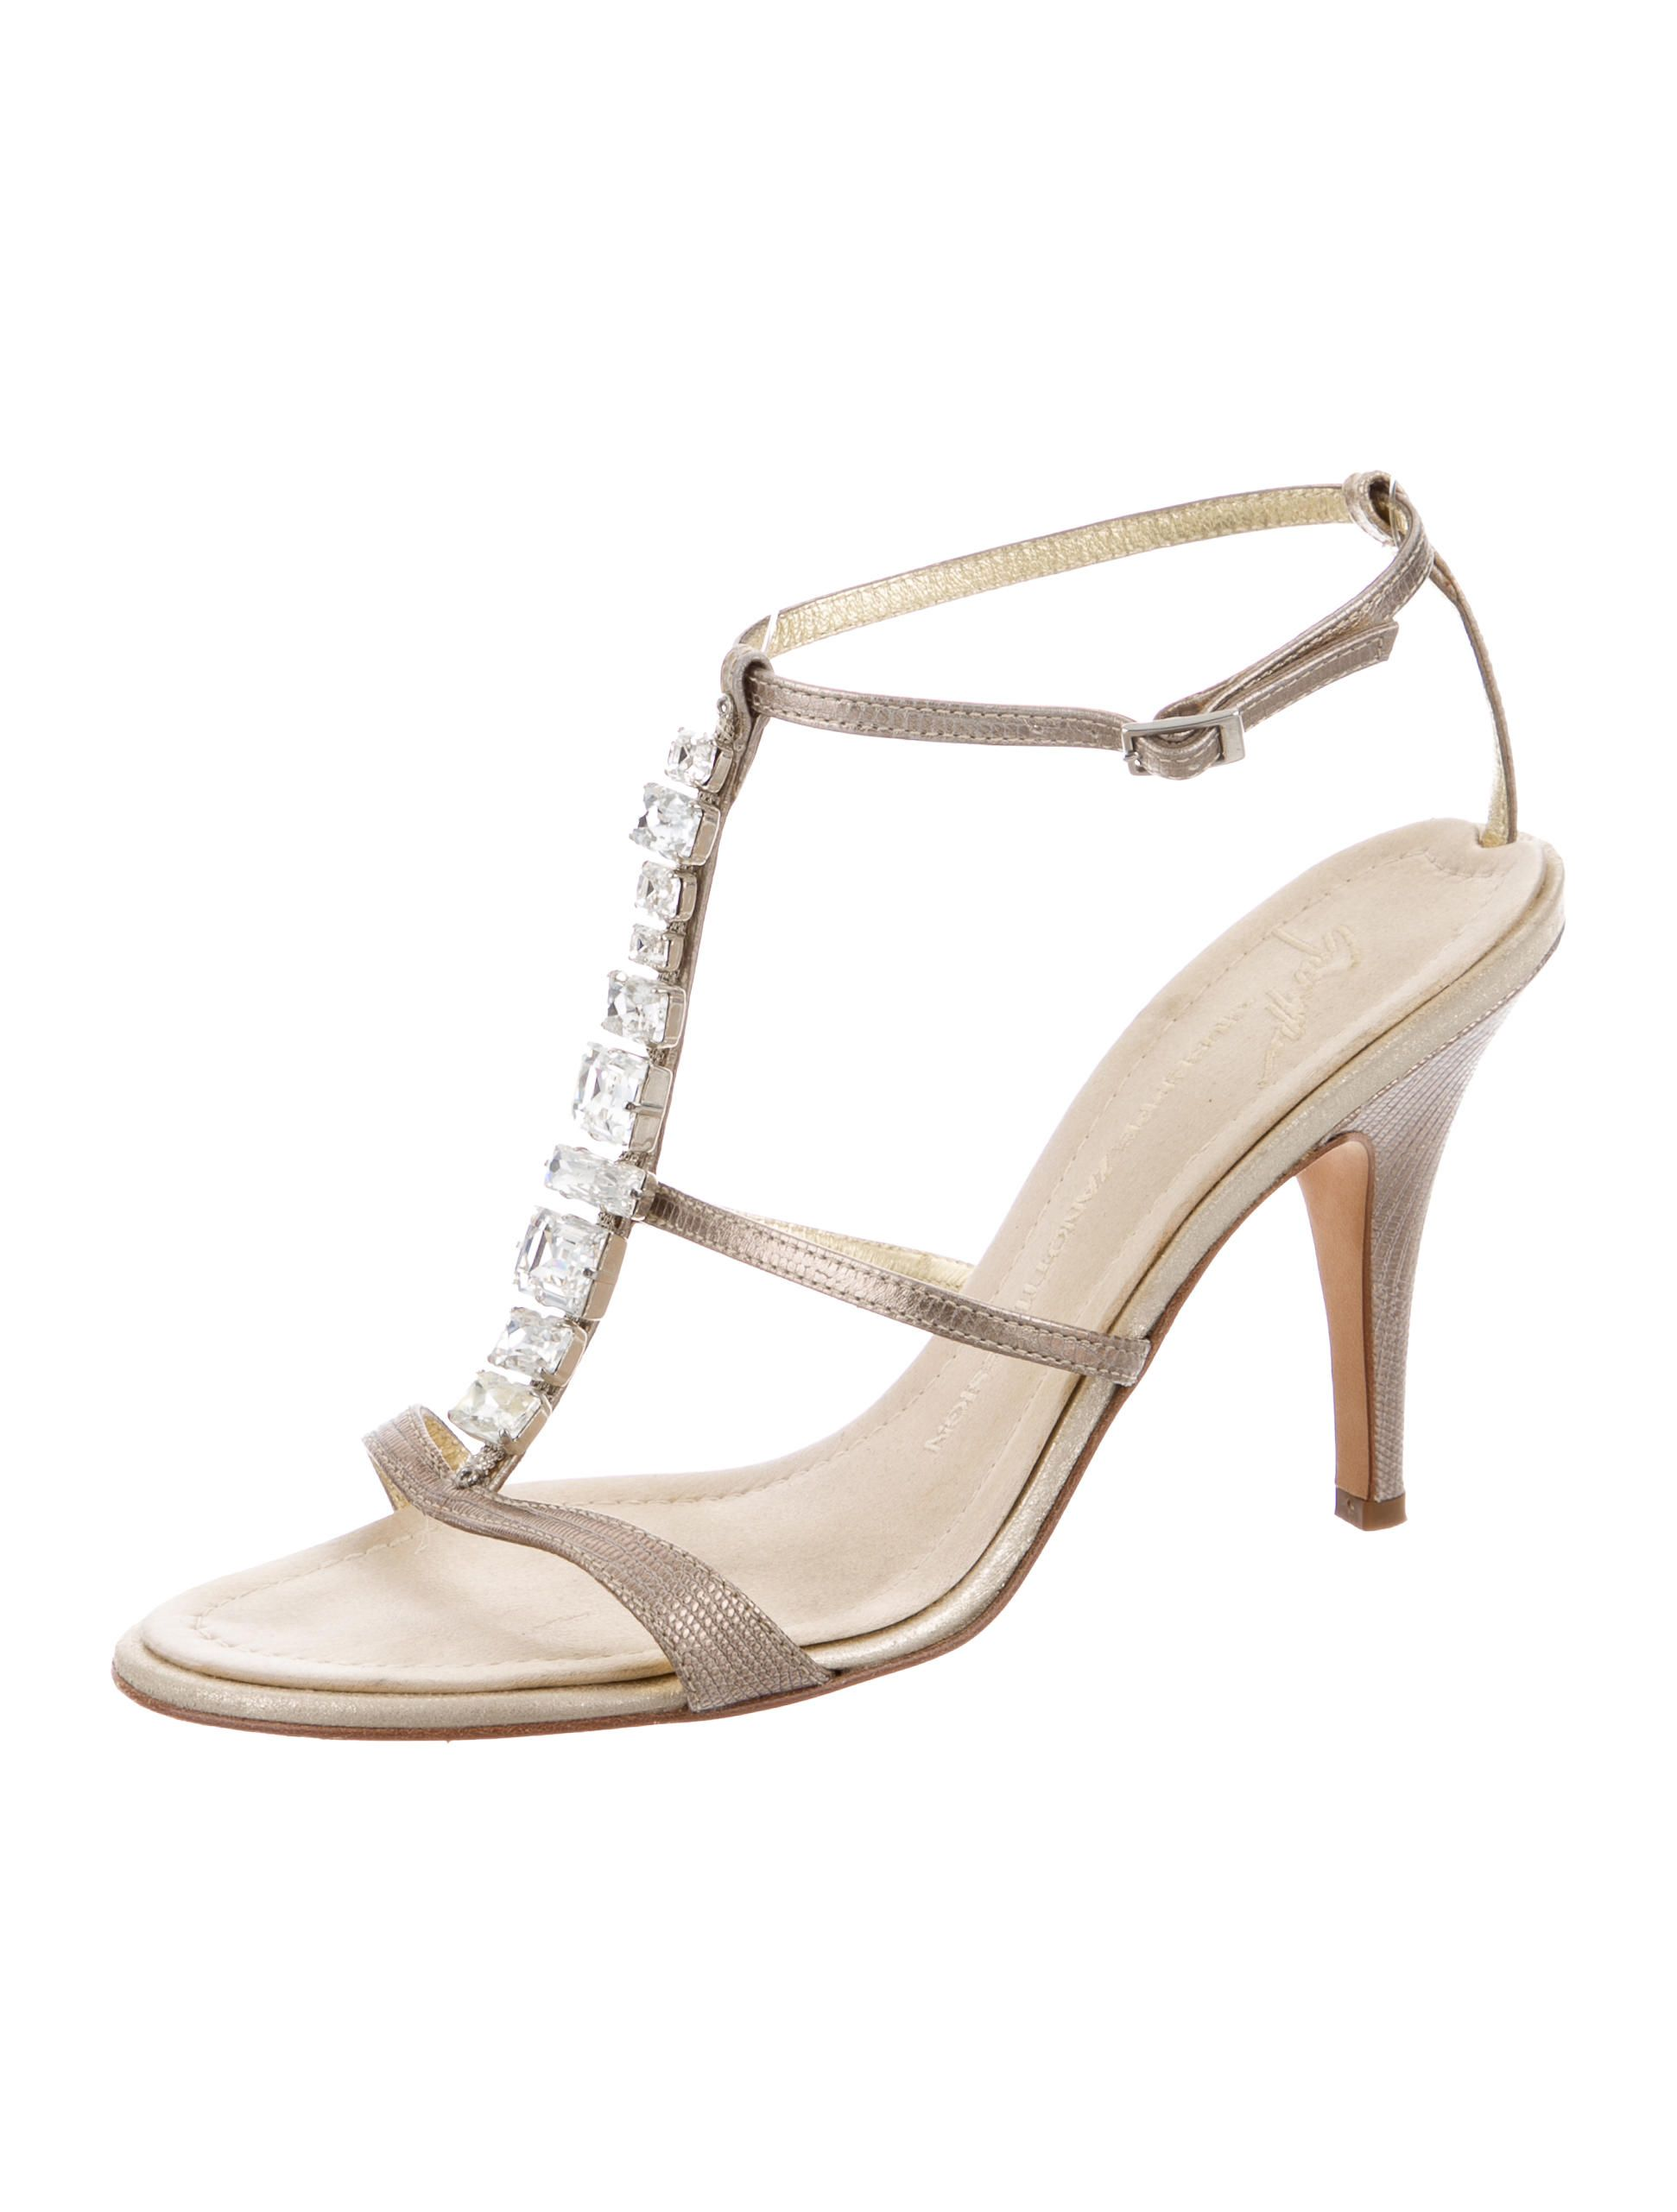 Giuseppe Zanotti Embossed Embellished Sandals extremely for sale outlet clearance QLO0f